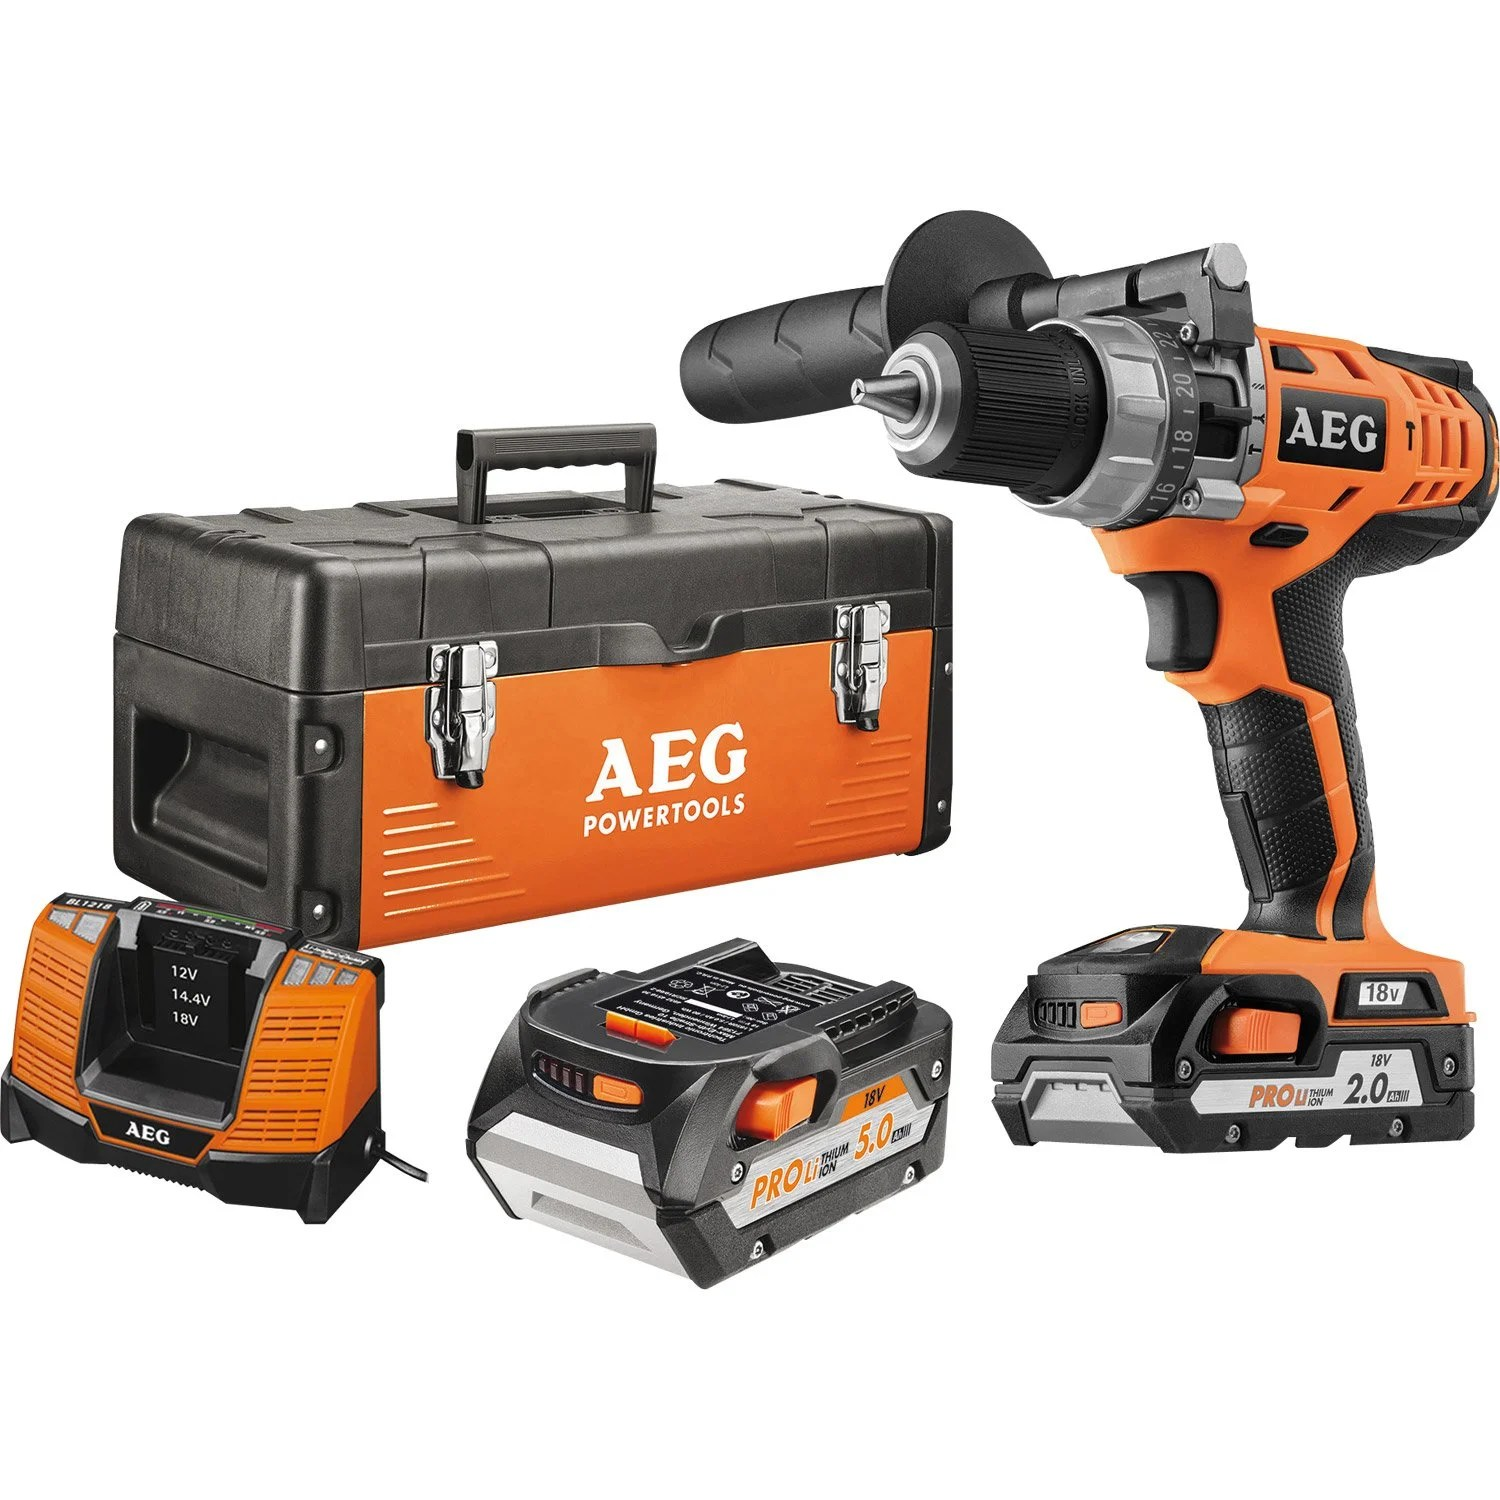 Vente Privee Aeg Aeg Powertools Perceuse